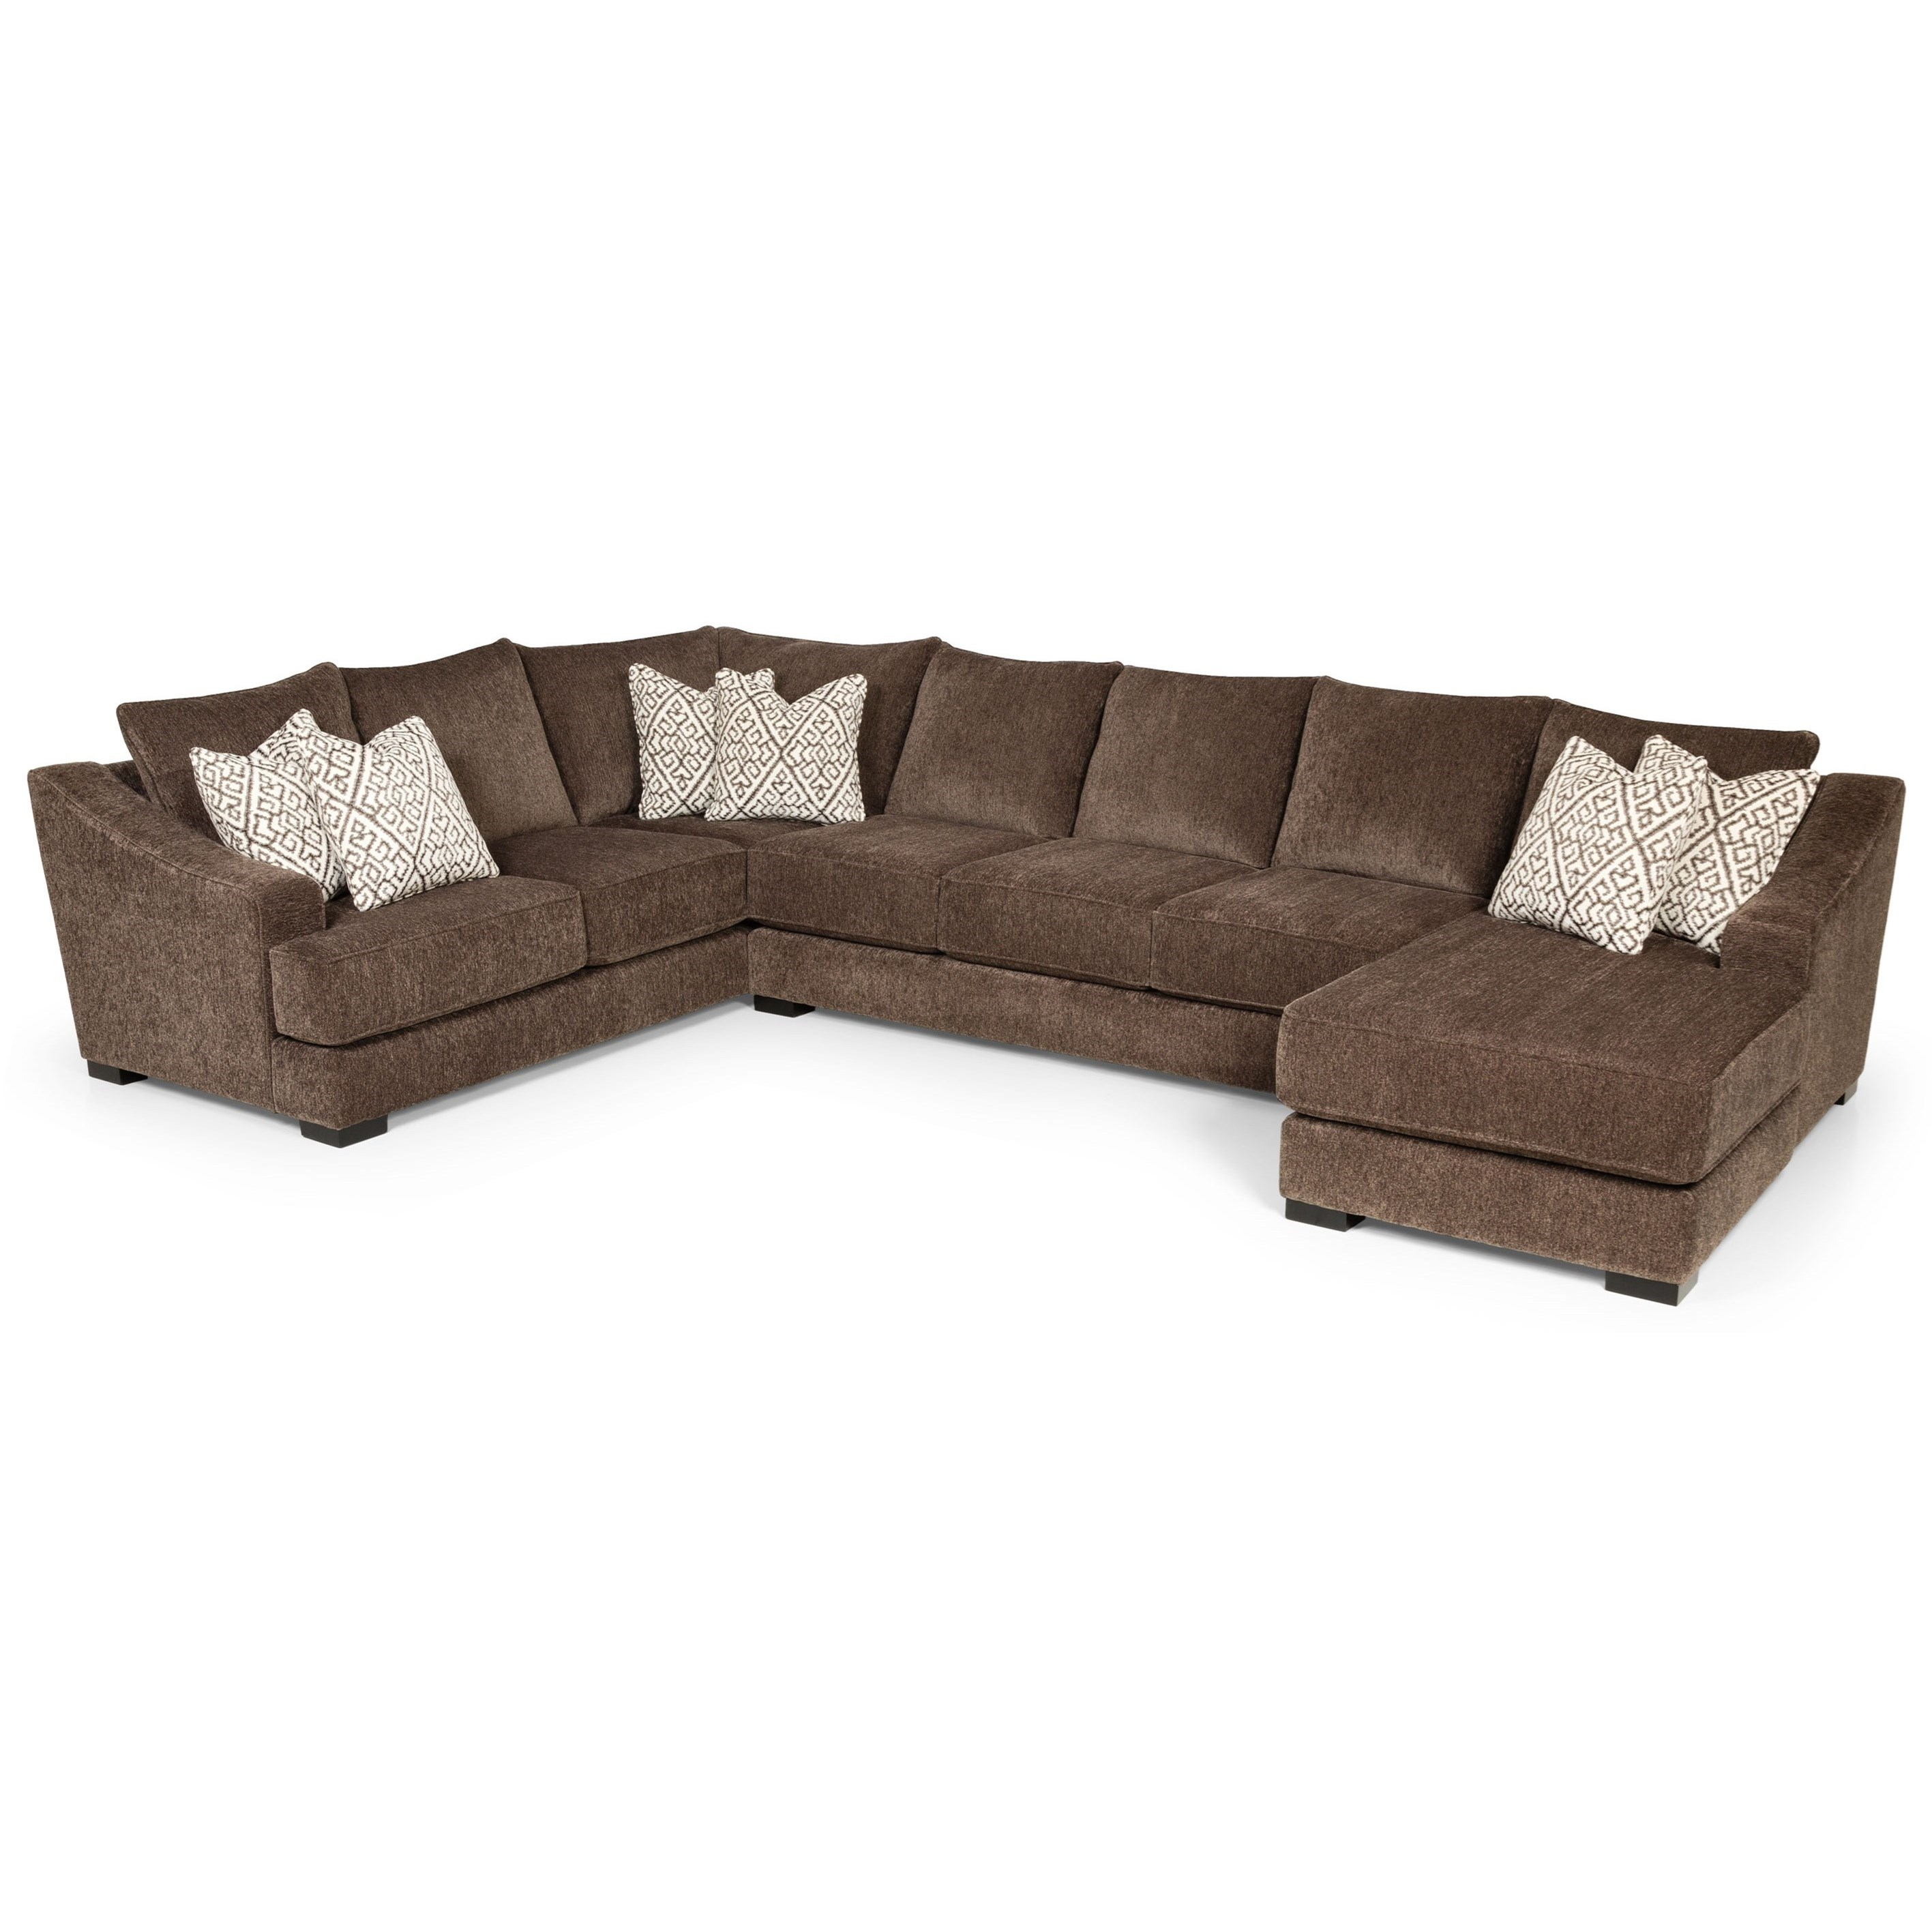 376 Sectional Sofa by Stanton at Wilson's Furniture